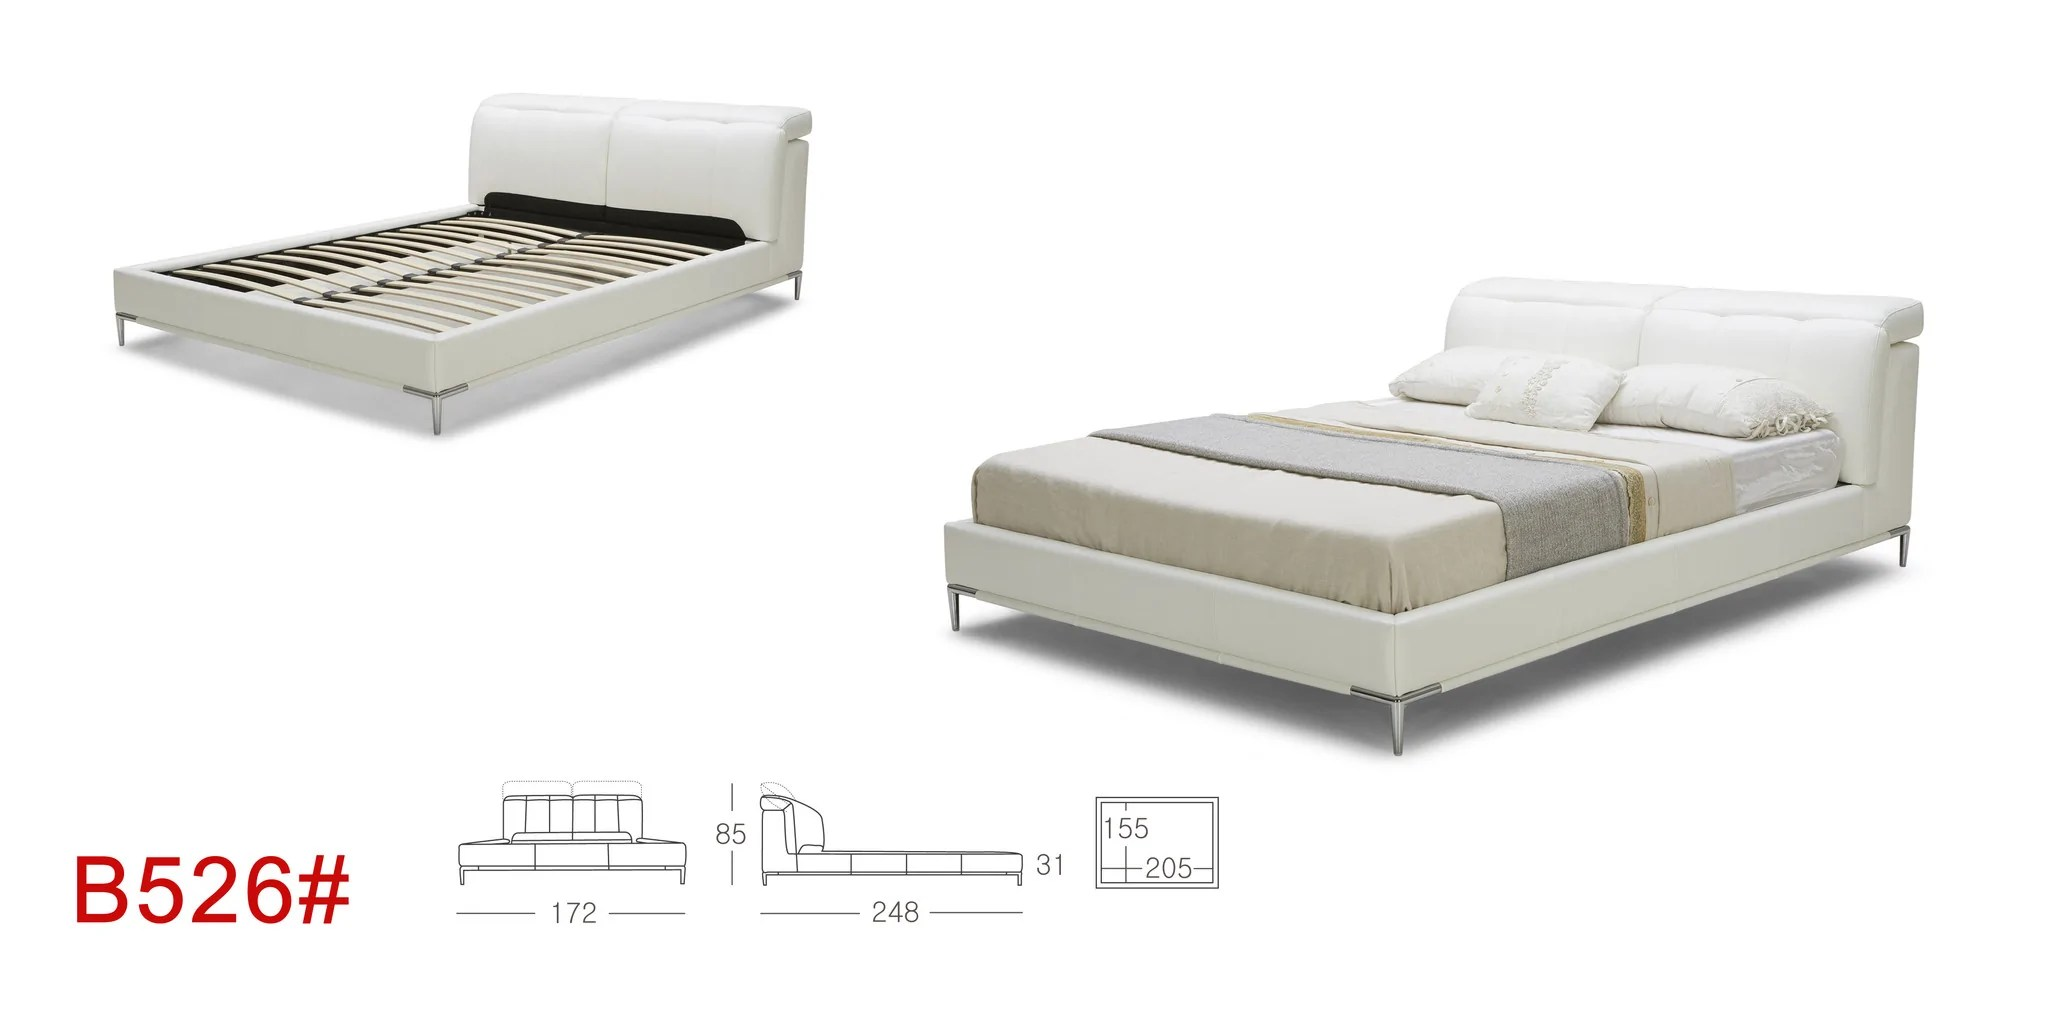 Is A Platform Bed Comfortable Euro Ktouch B526 Modern Upholstered Platform Bed With Adjustable Headrests